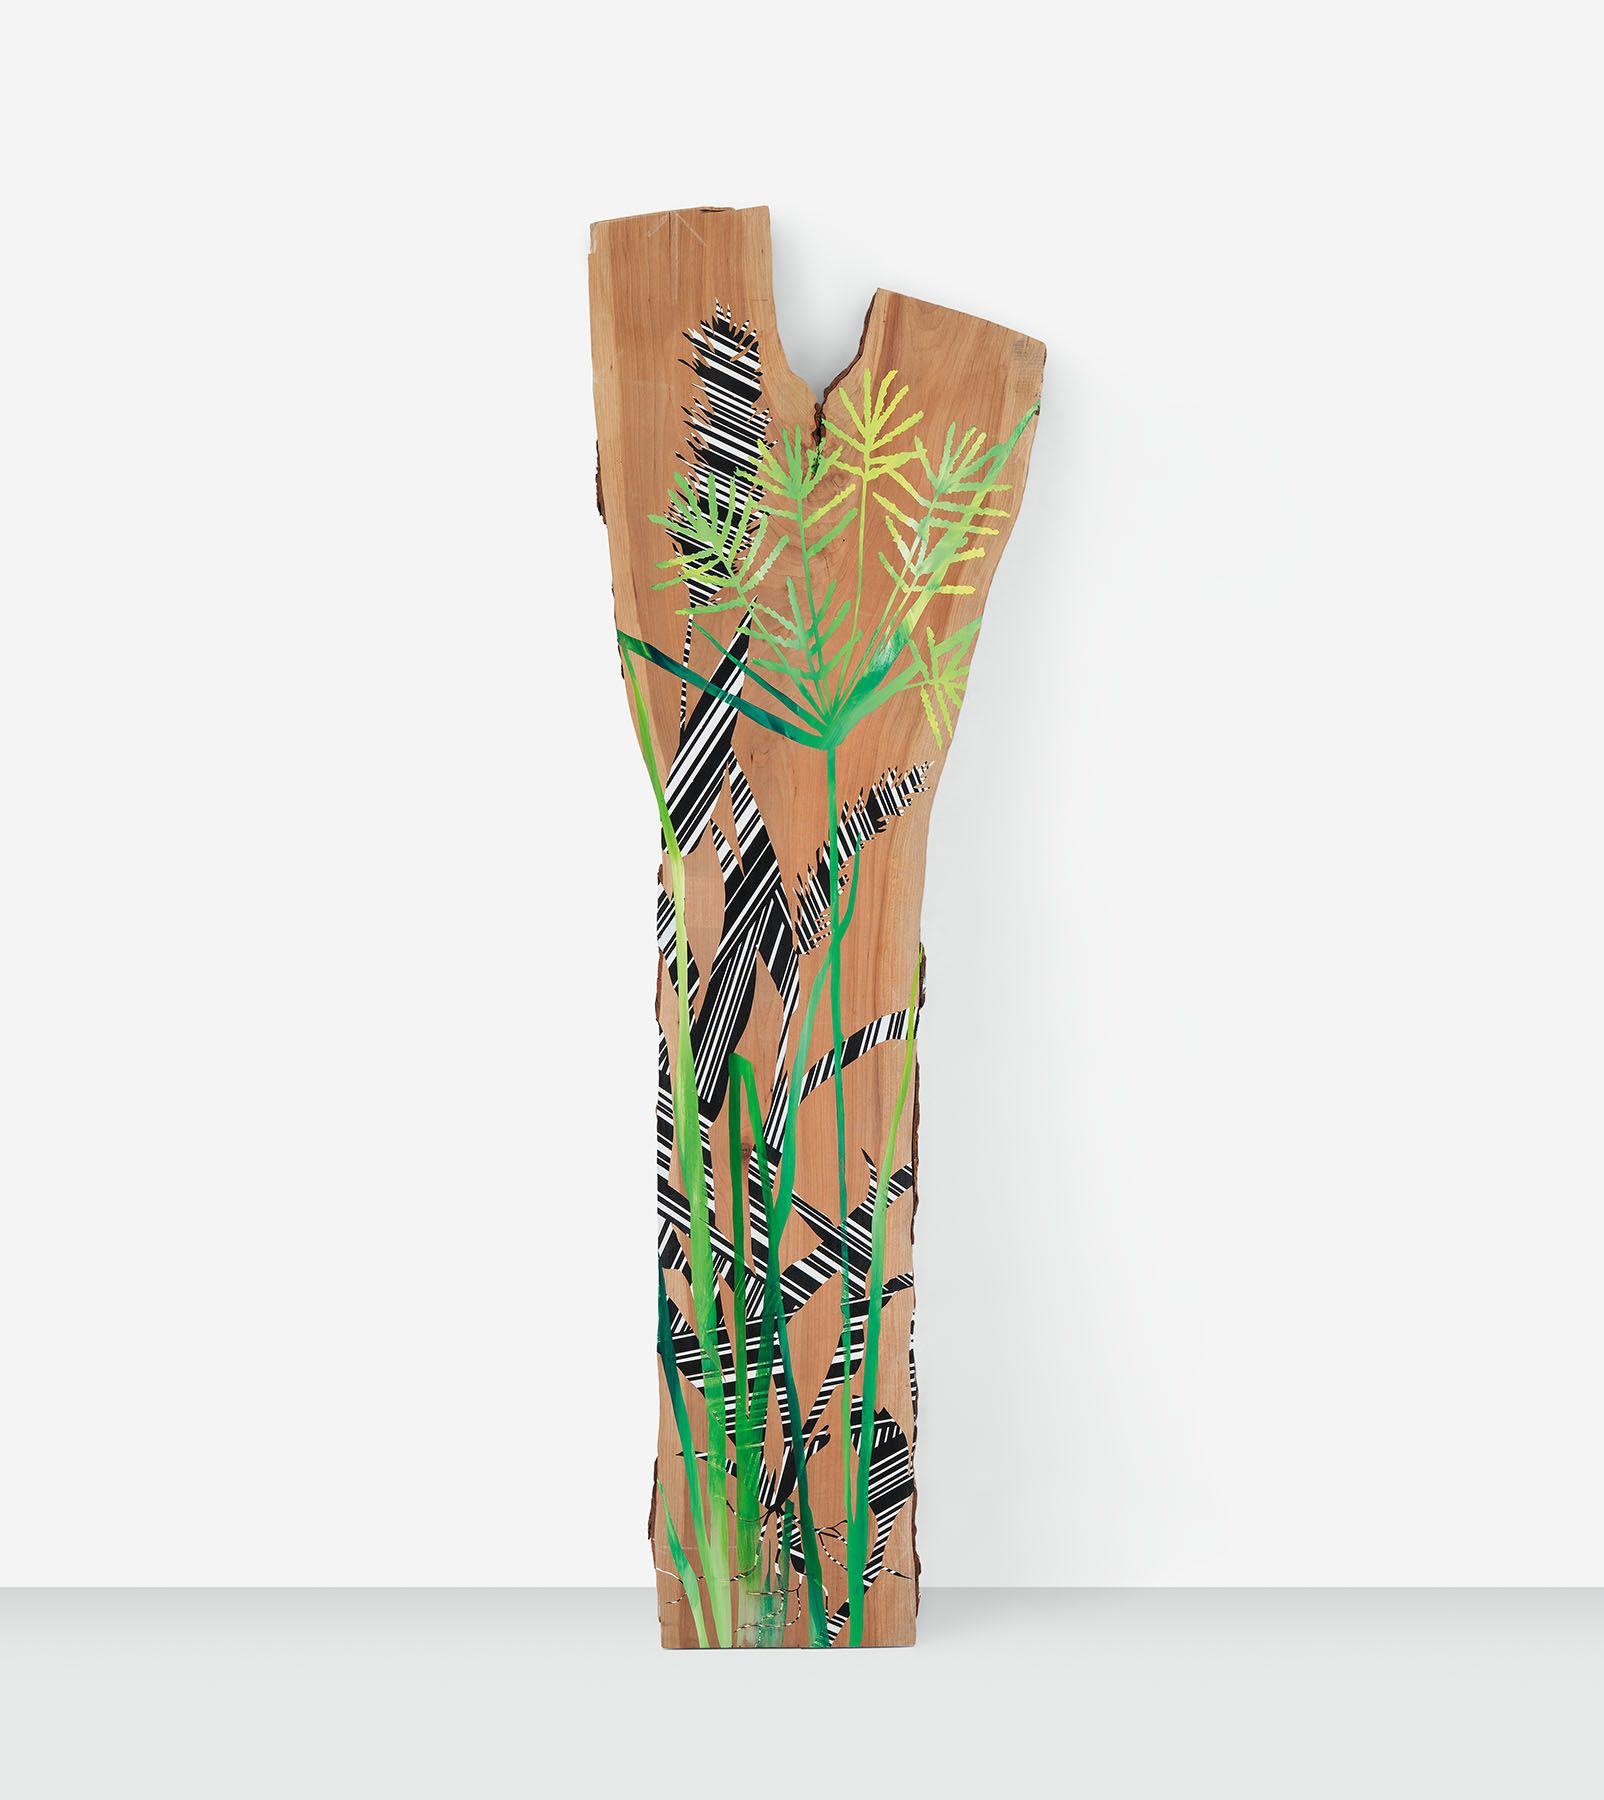 The Foxtail and The Nut Grass, 2019 Acrylic paint on cherry, 95 x 29 x 1 inches, 241.3 x 73.7 x 2.5 cm, MMG#30772